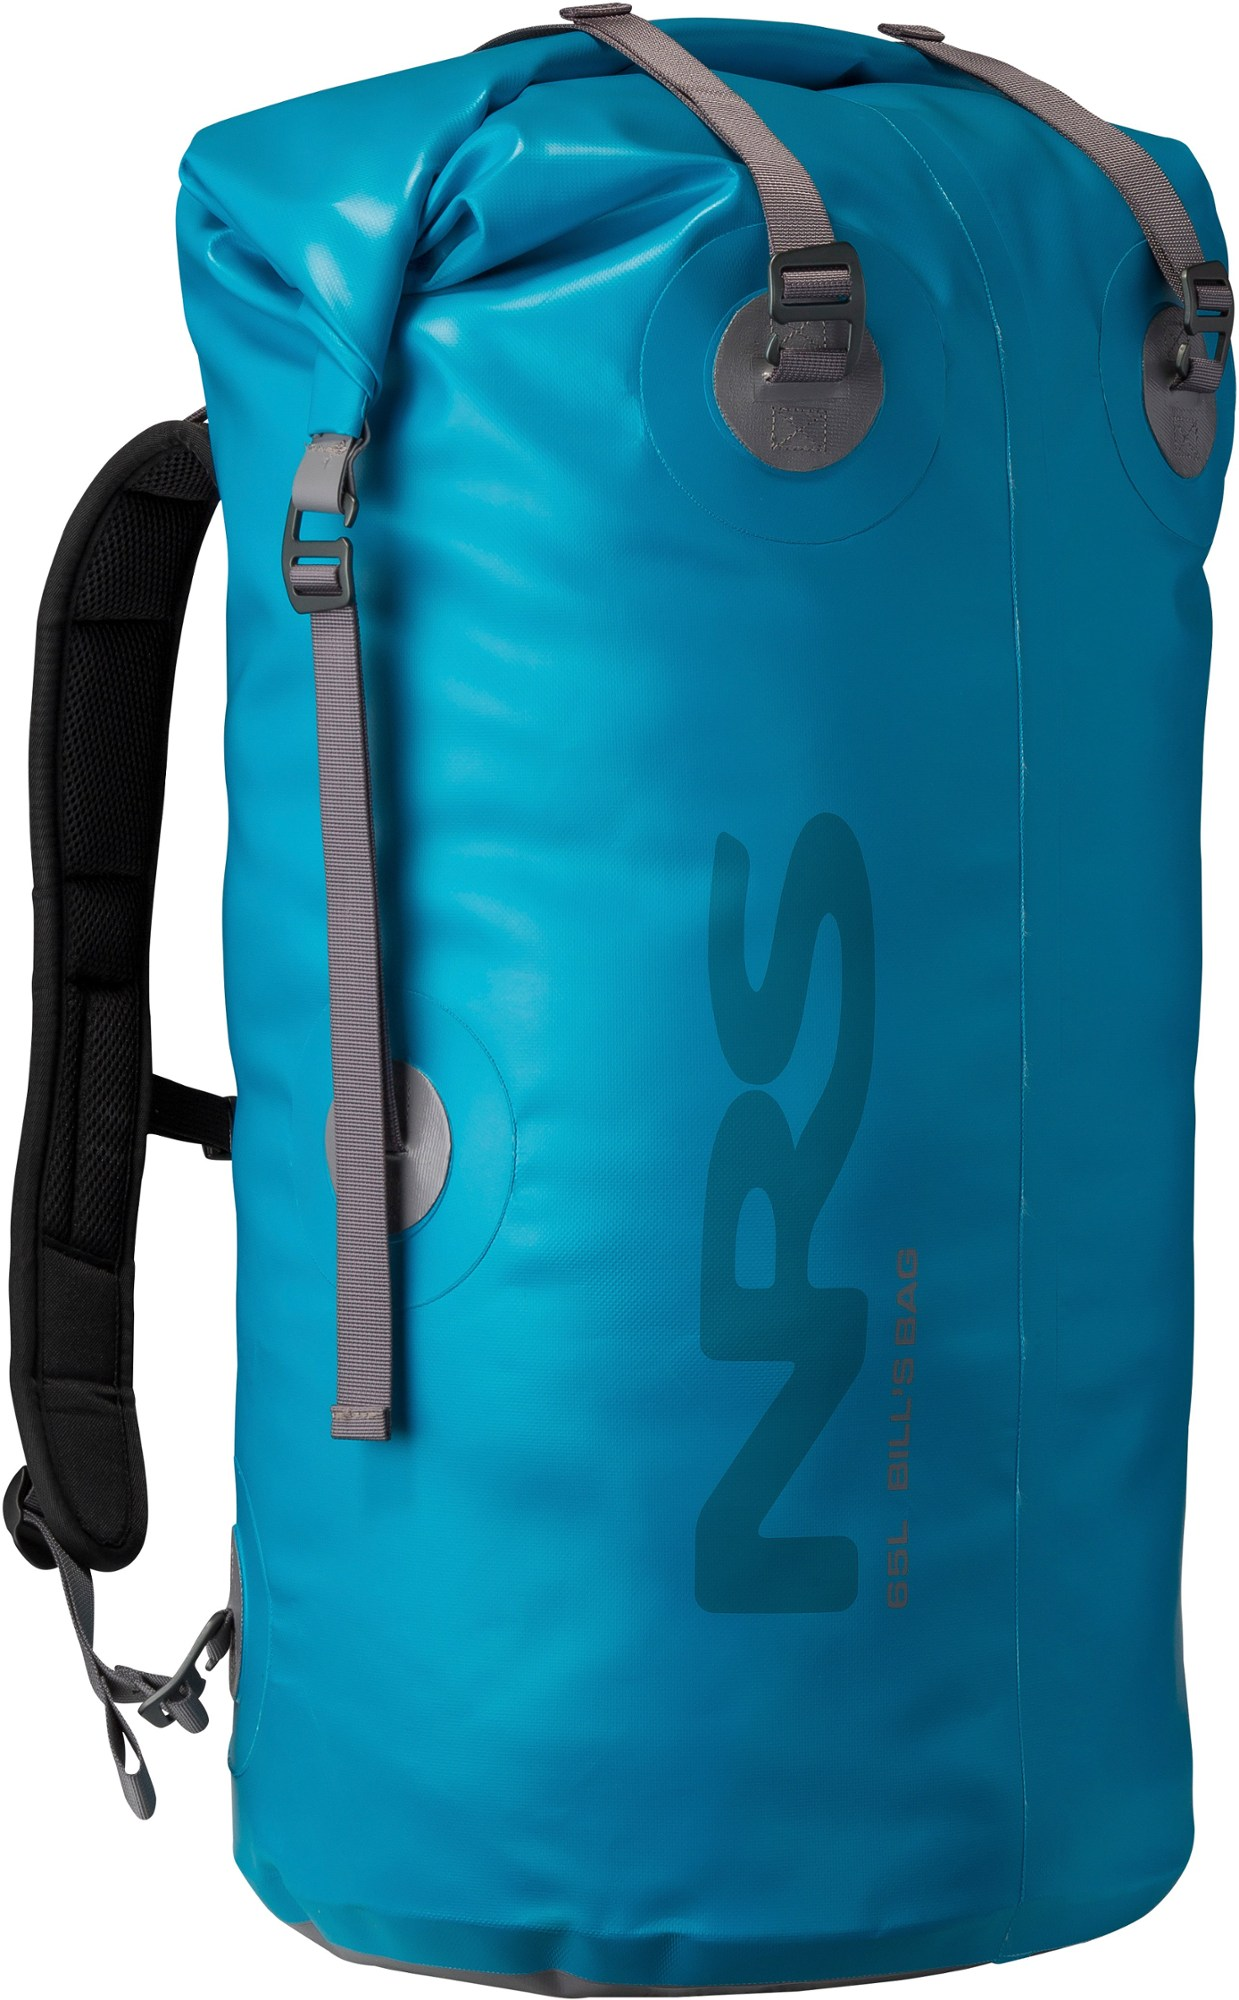 NRS Bill's Bag Dry Bag - 65 Liters